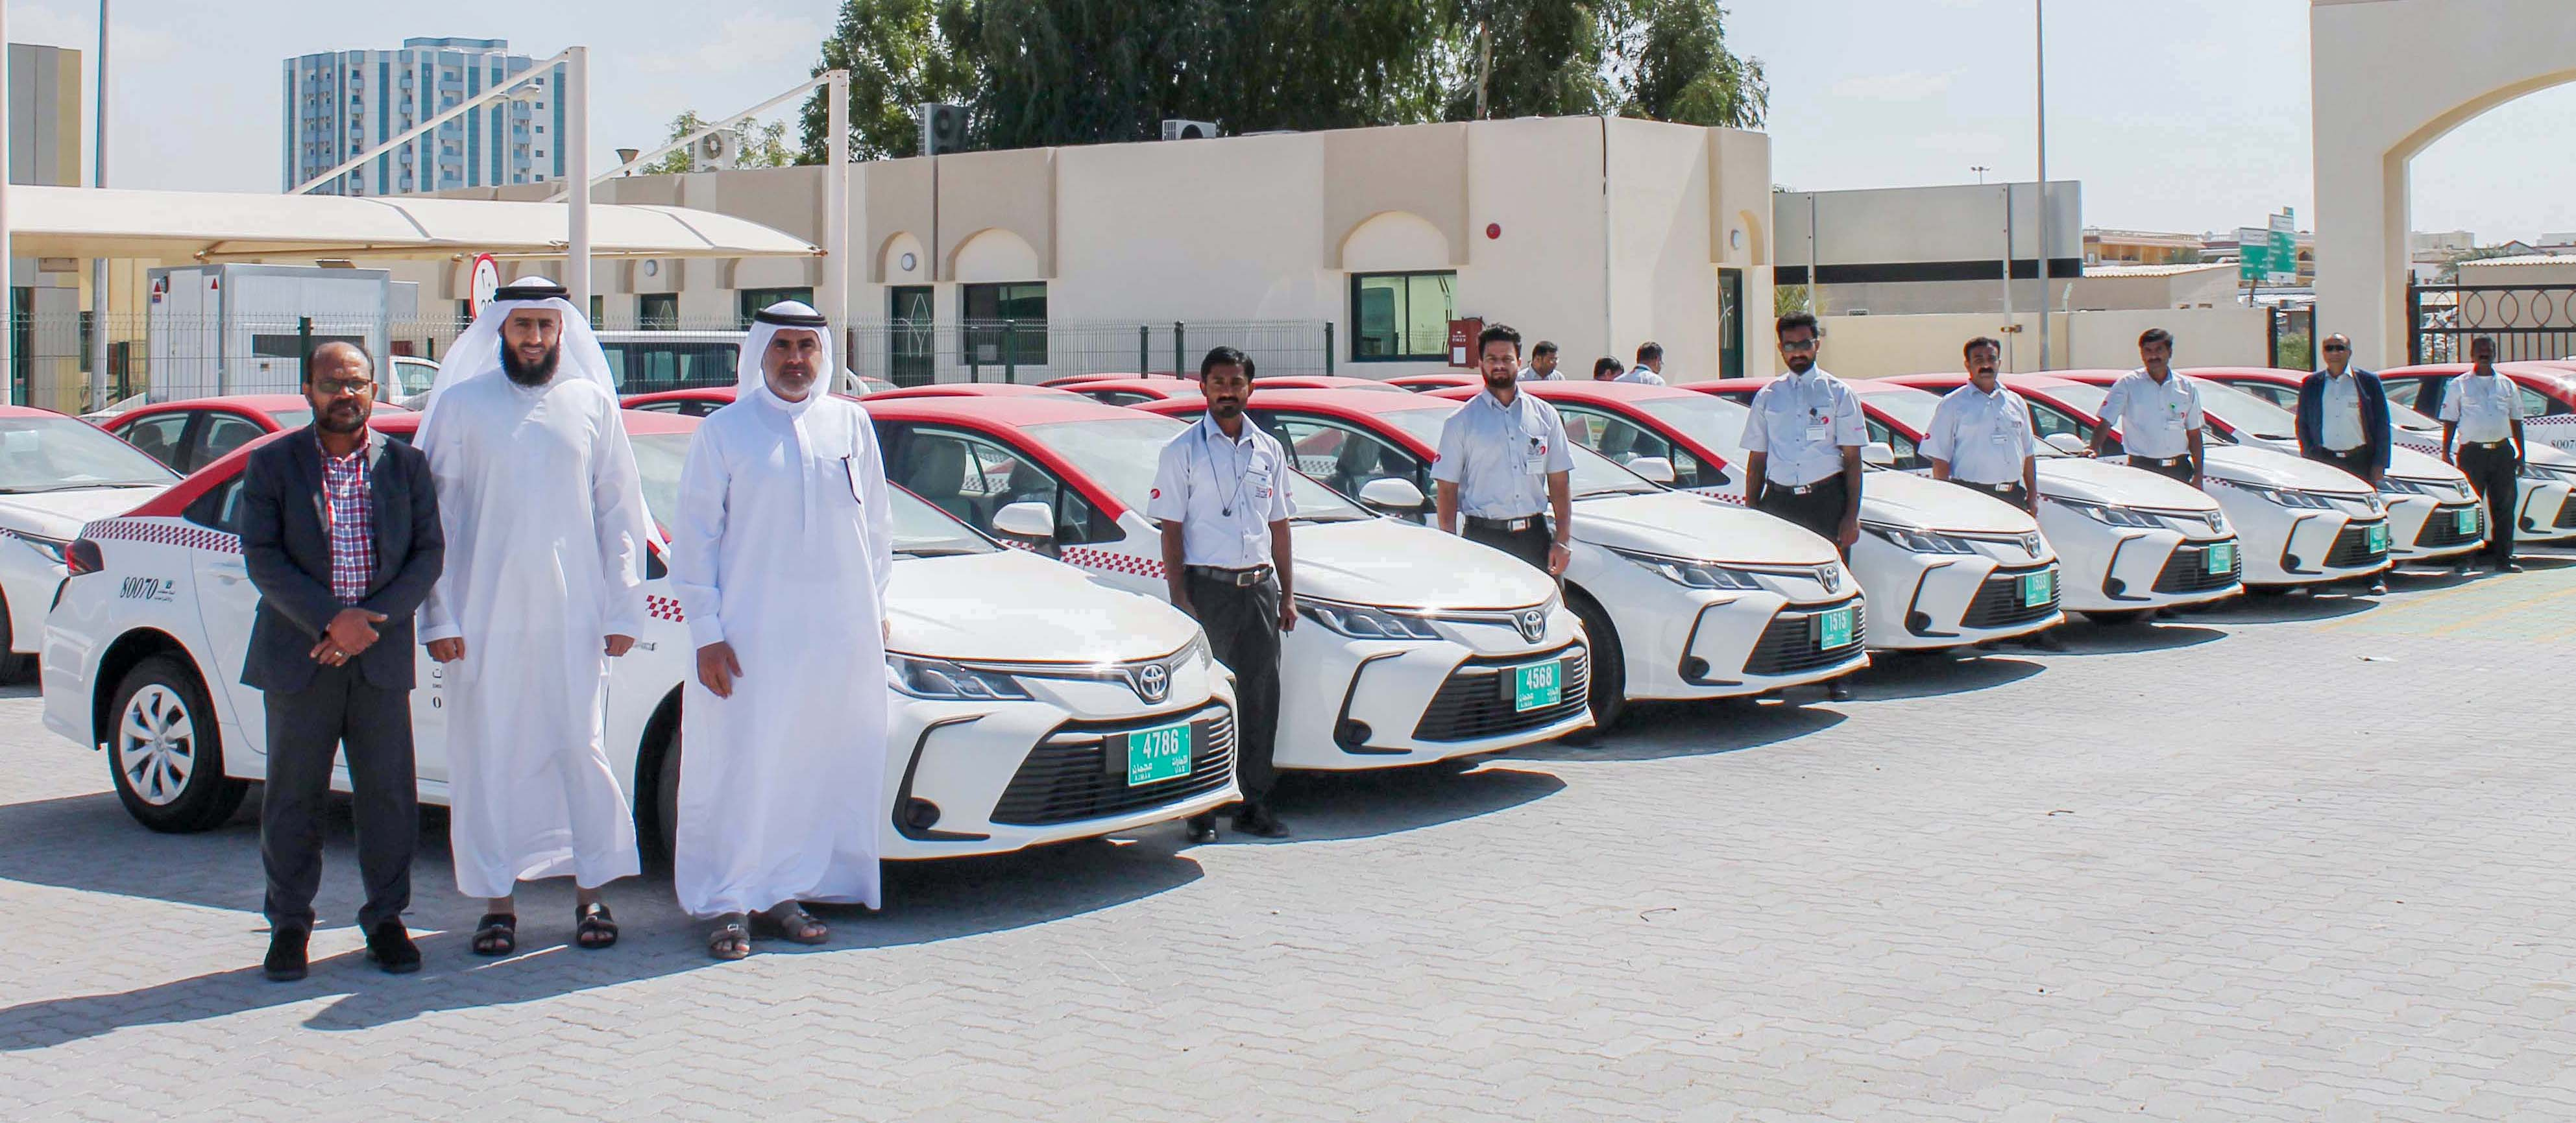 Emirates Transport Taxi registers more than half a million trips in Ajman during 2020